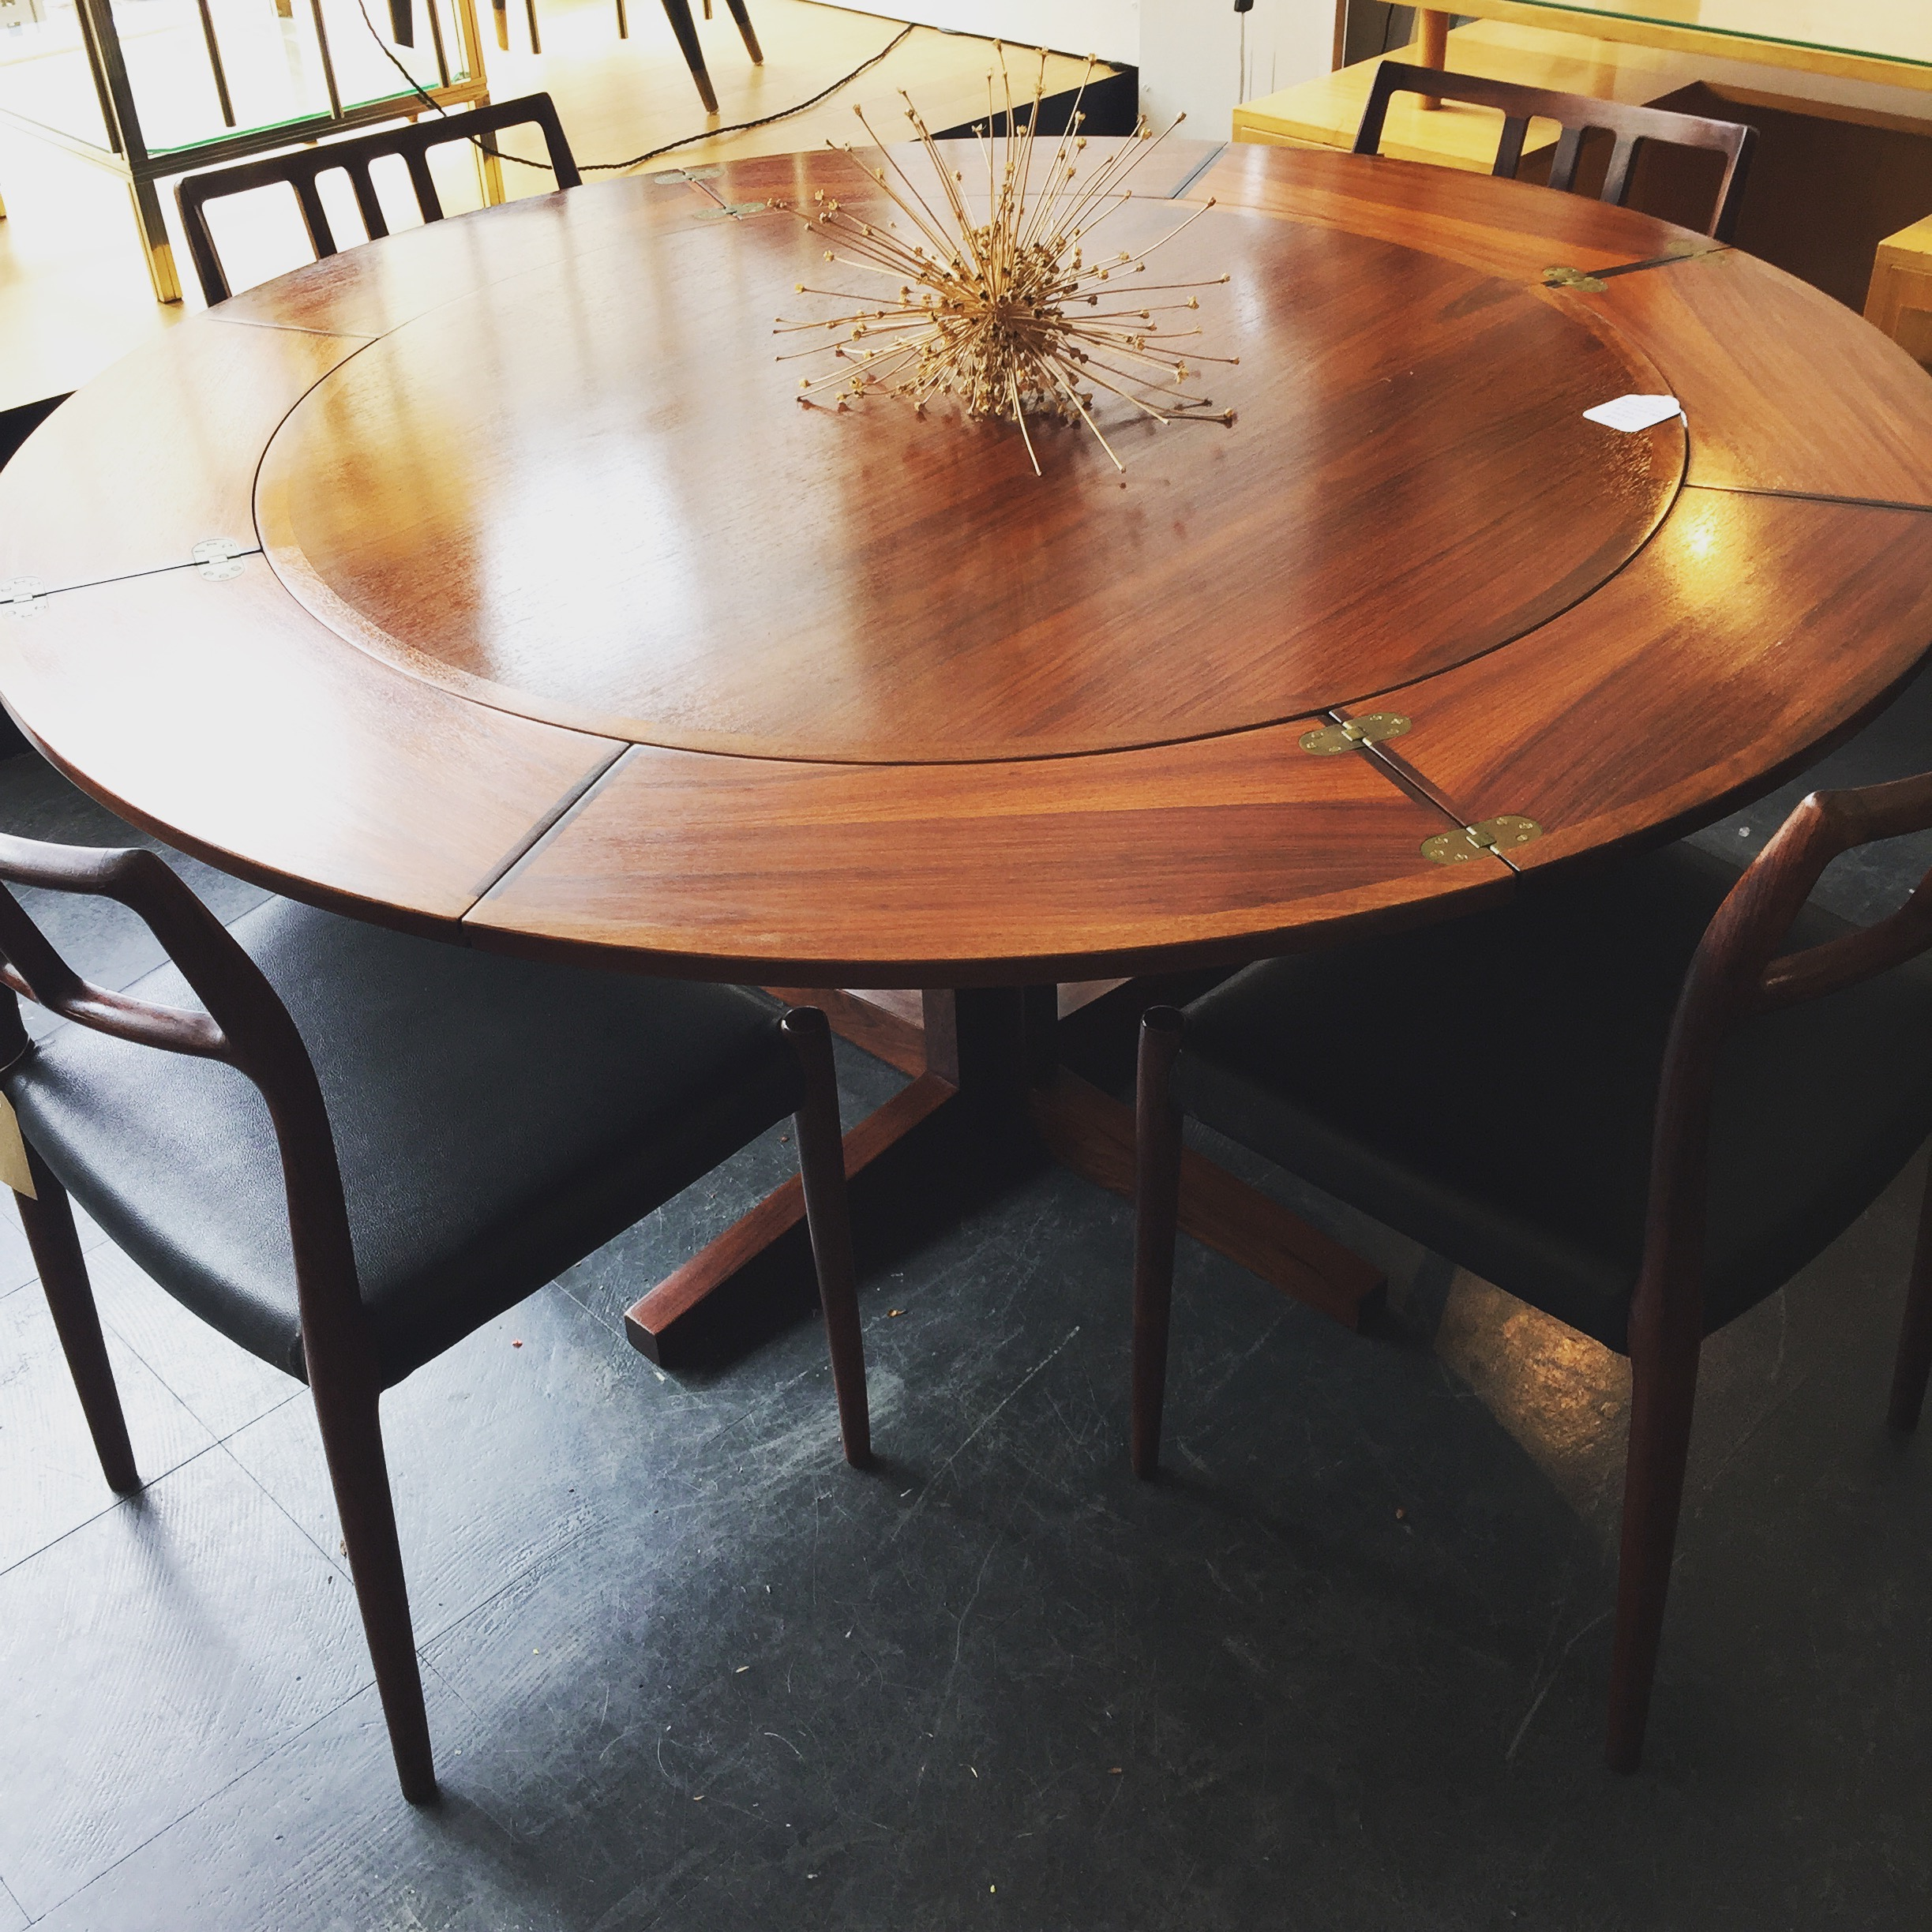 SOLD - LOTUS DINING TABLE BY DYRLUND